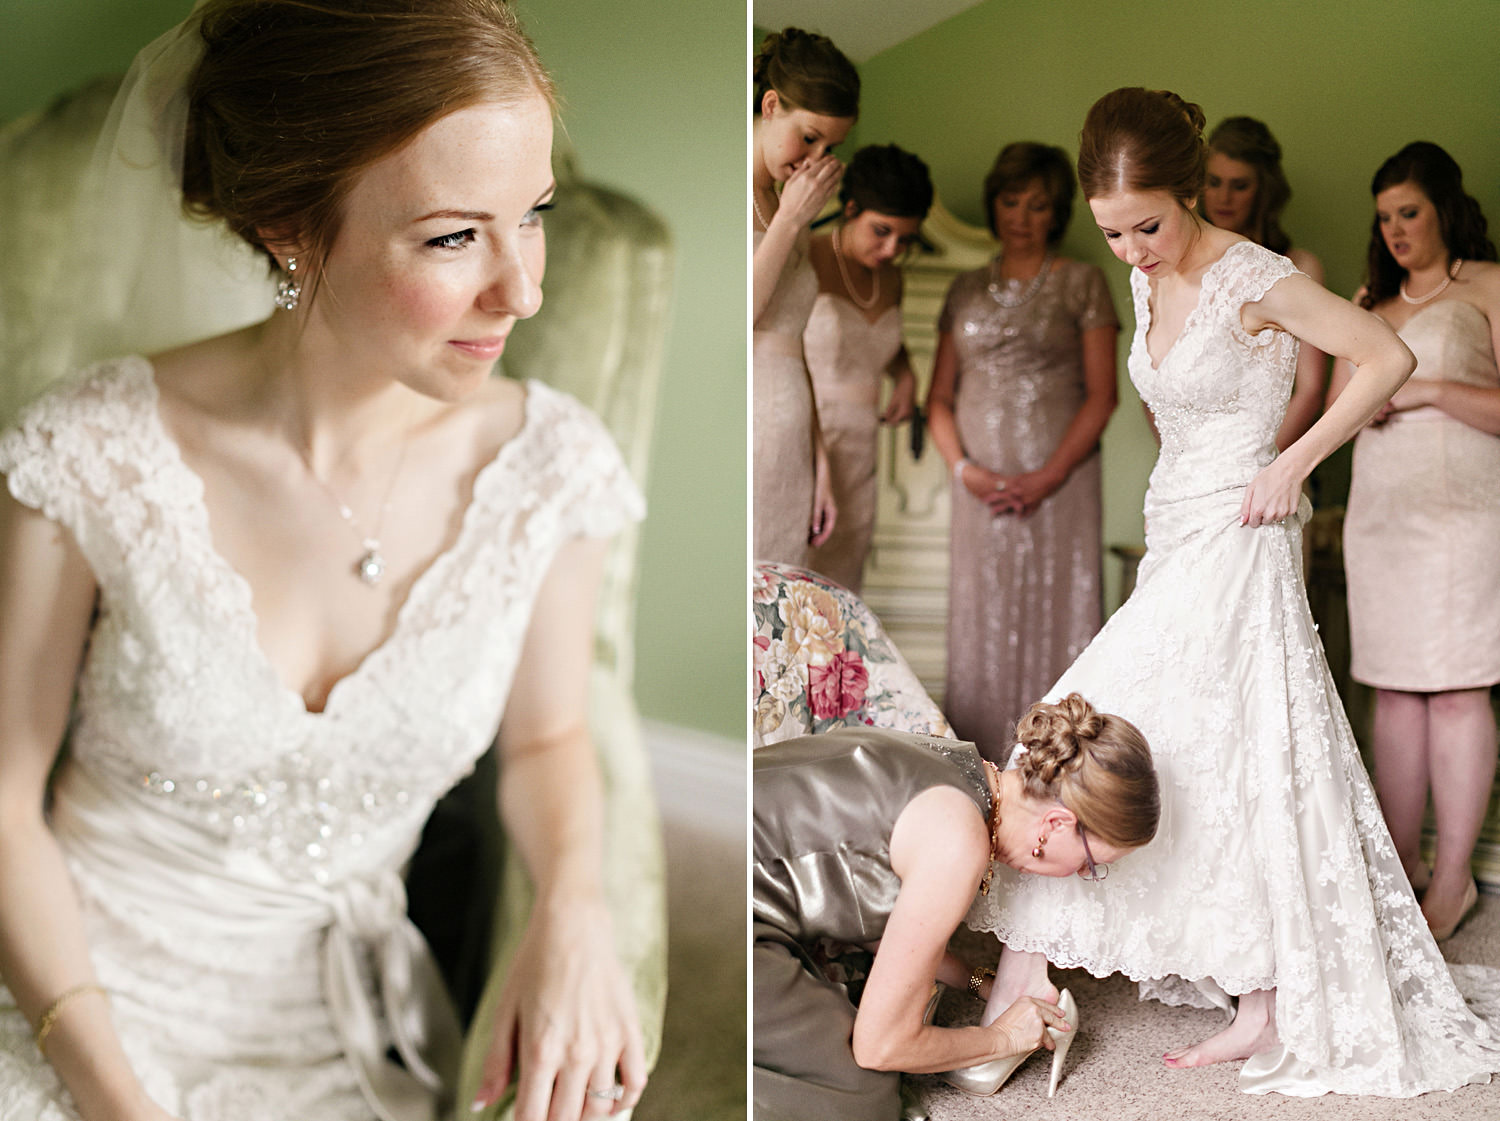 Bridesmaids help the bride with her wedding dress